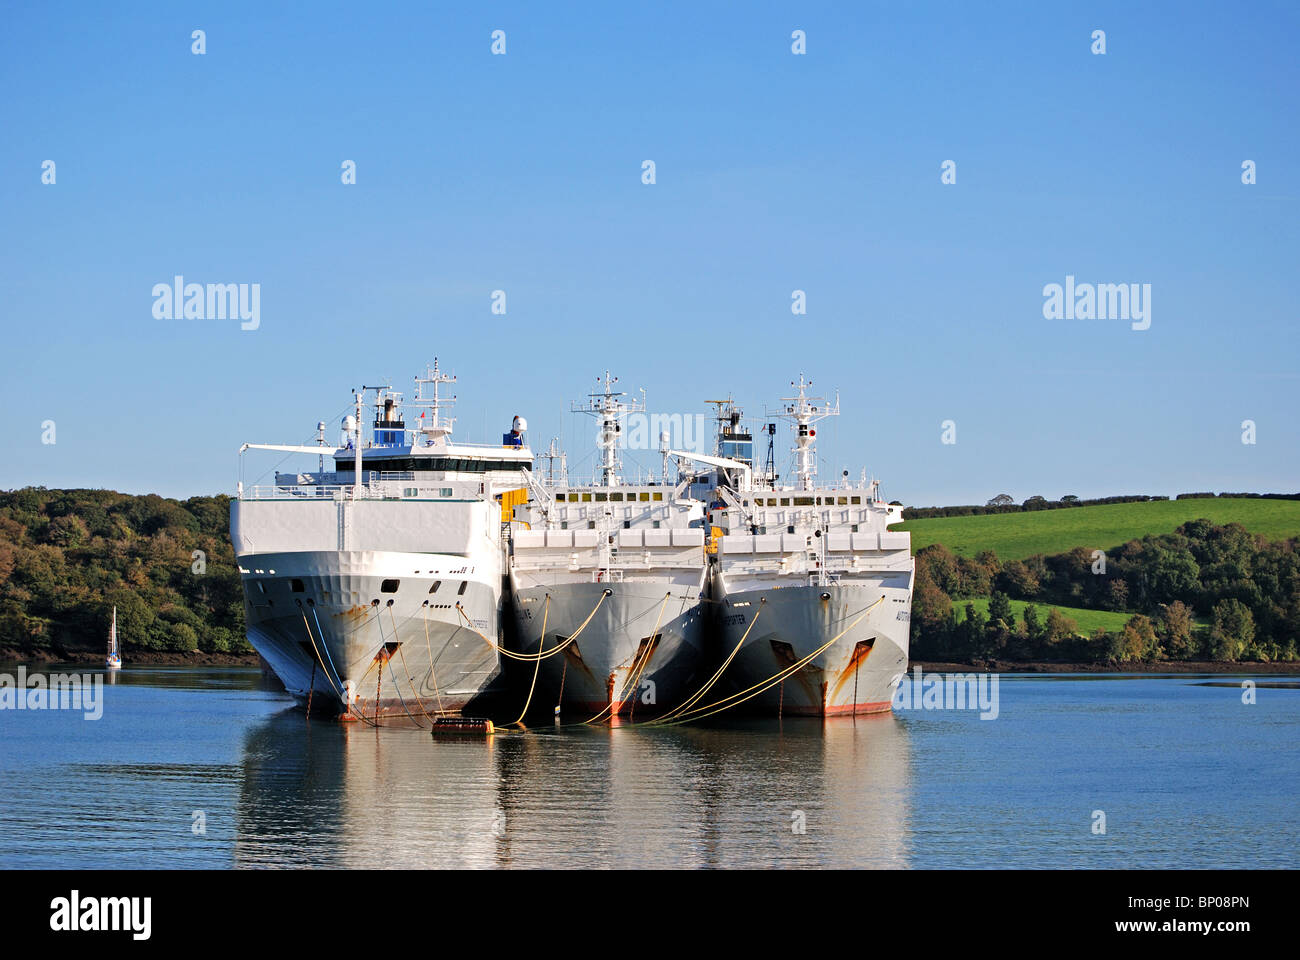 cargo ships ' laid up ' in deep water on the river fal near truro in cornwall, uk - Stock Image